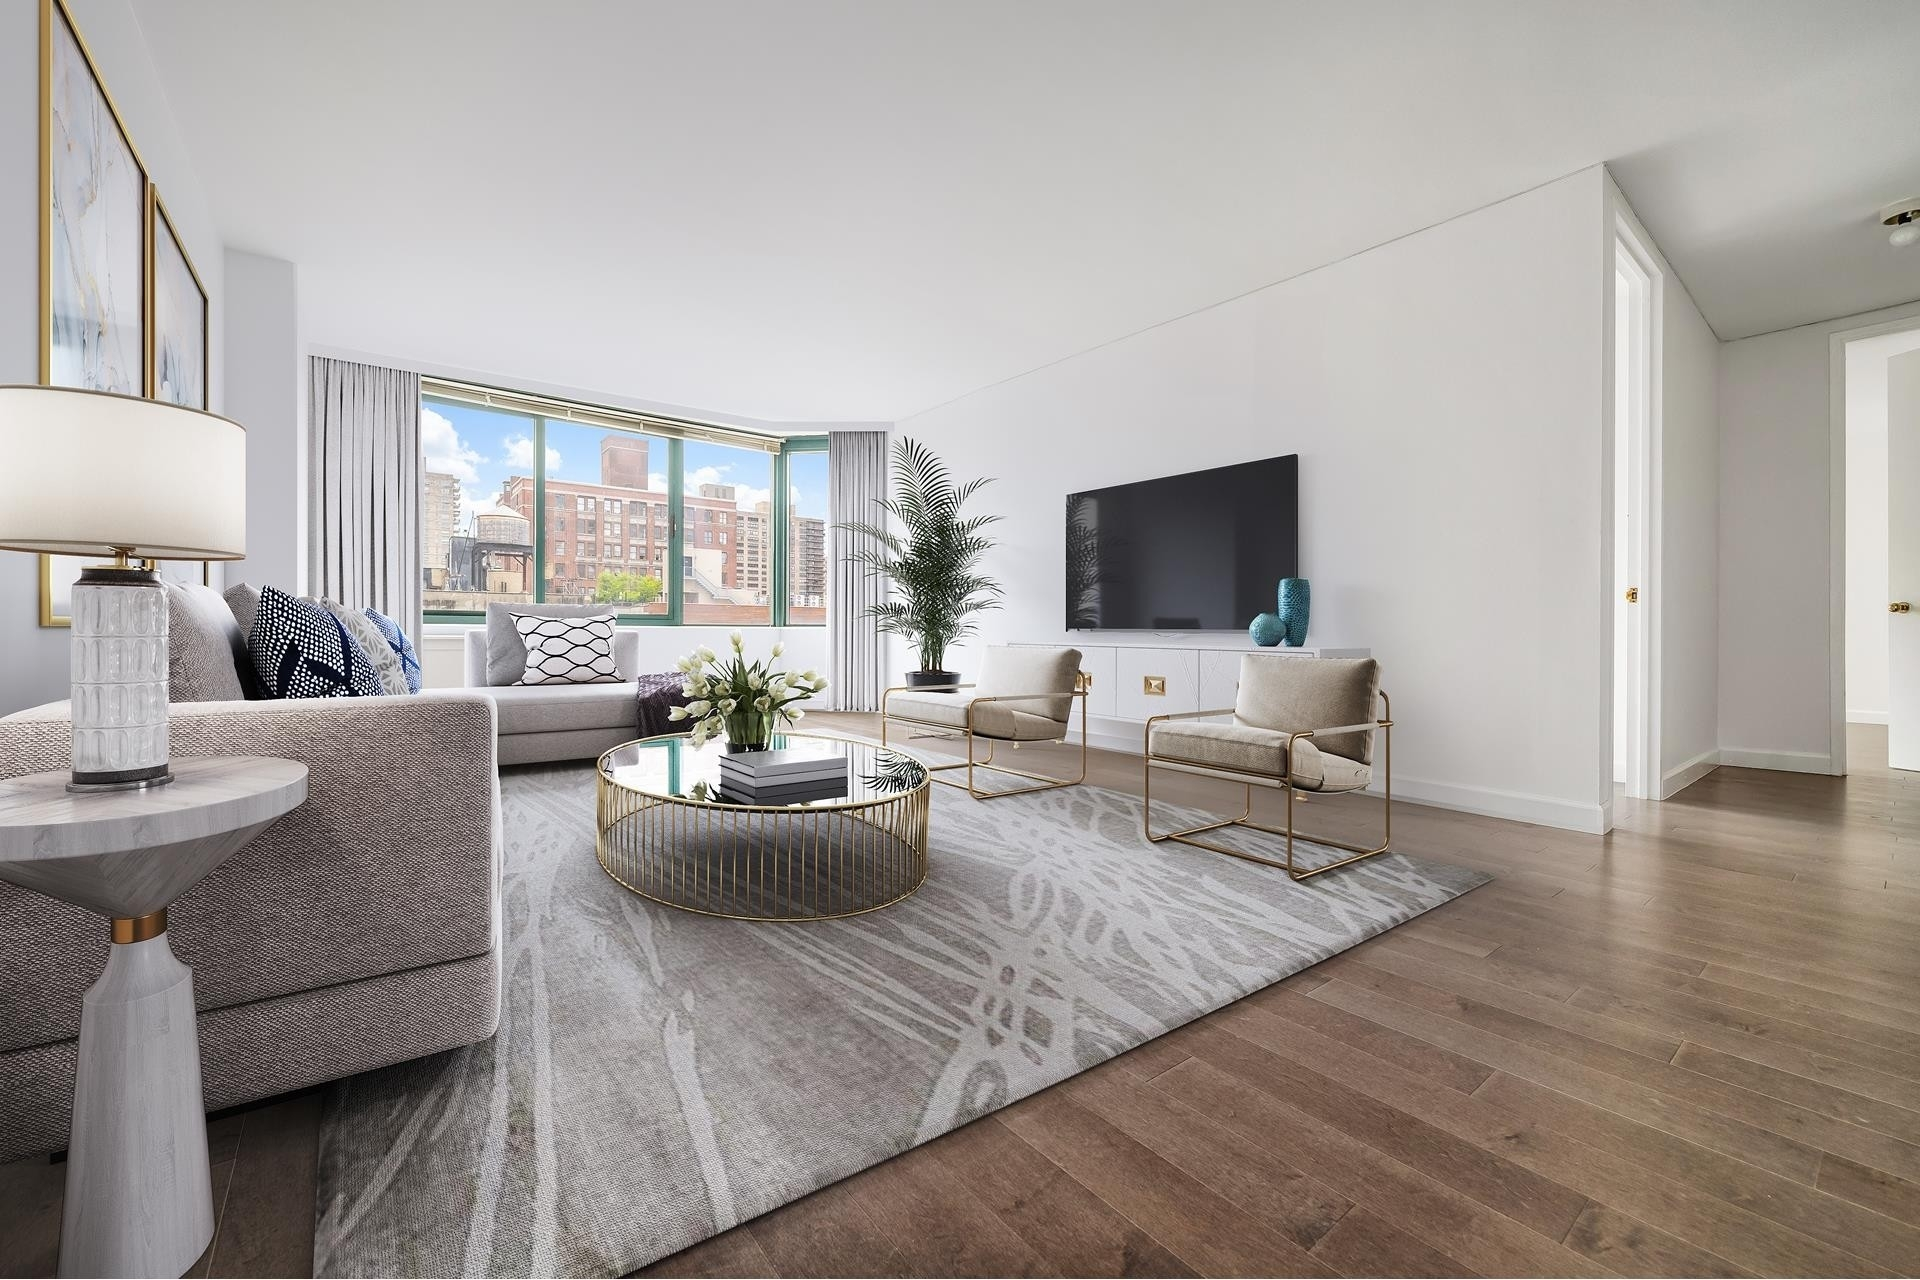 Condominium at 201 West 72nd St, 10D New York